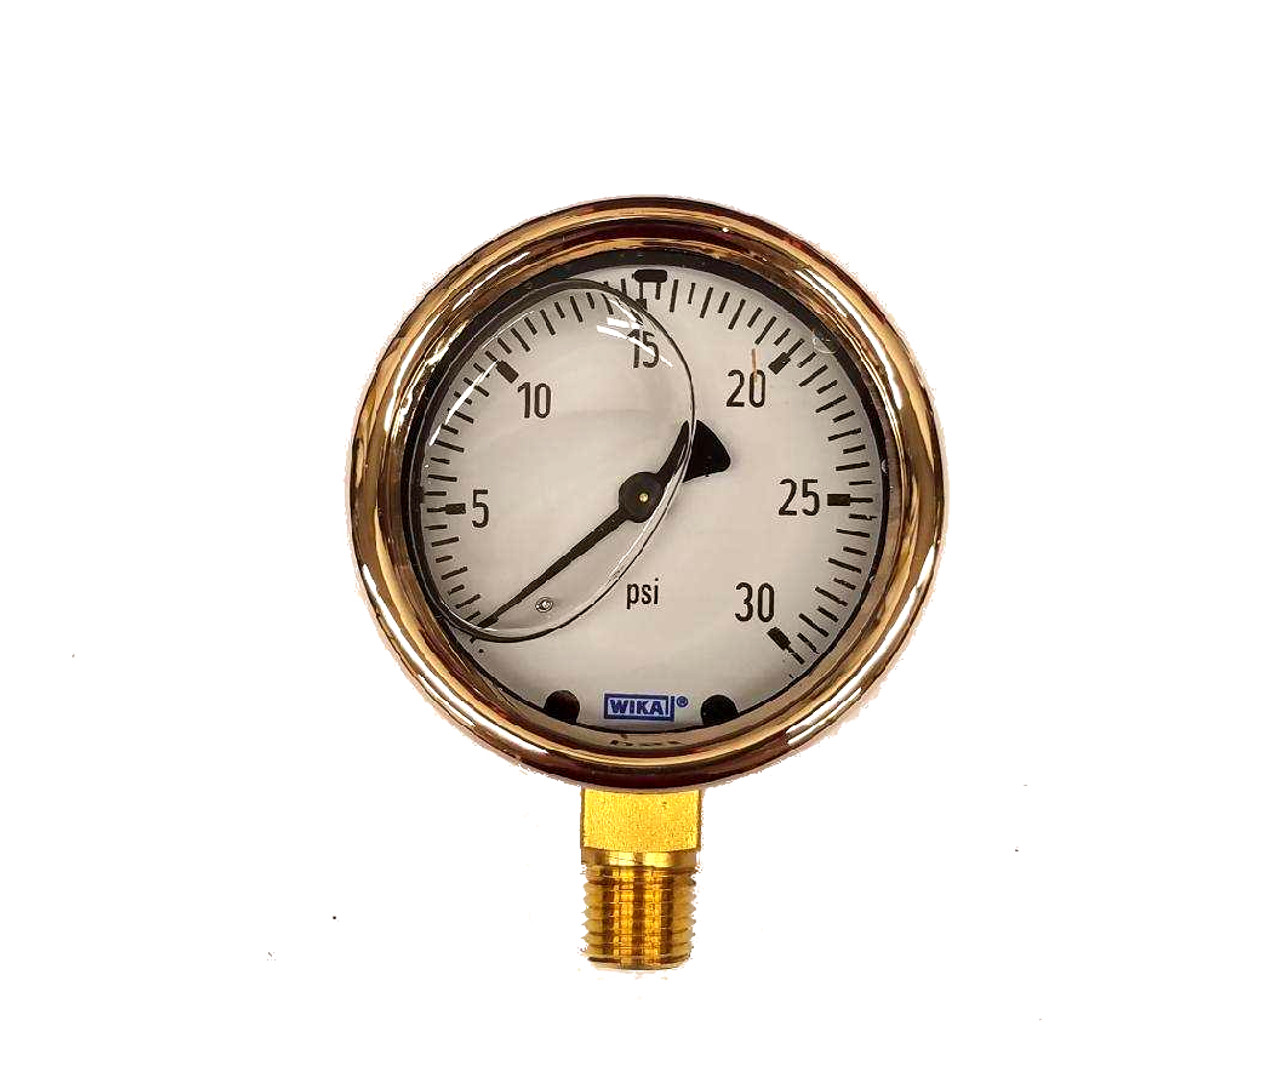 0-30 psi liquid filled gauge